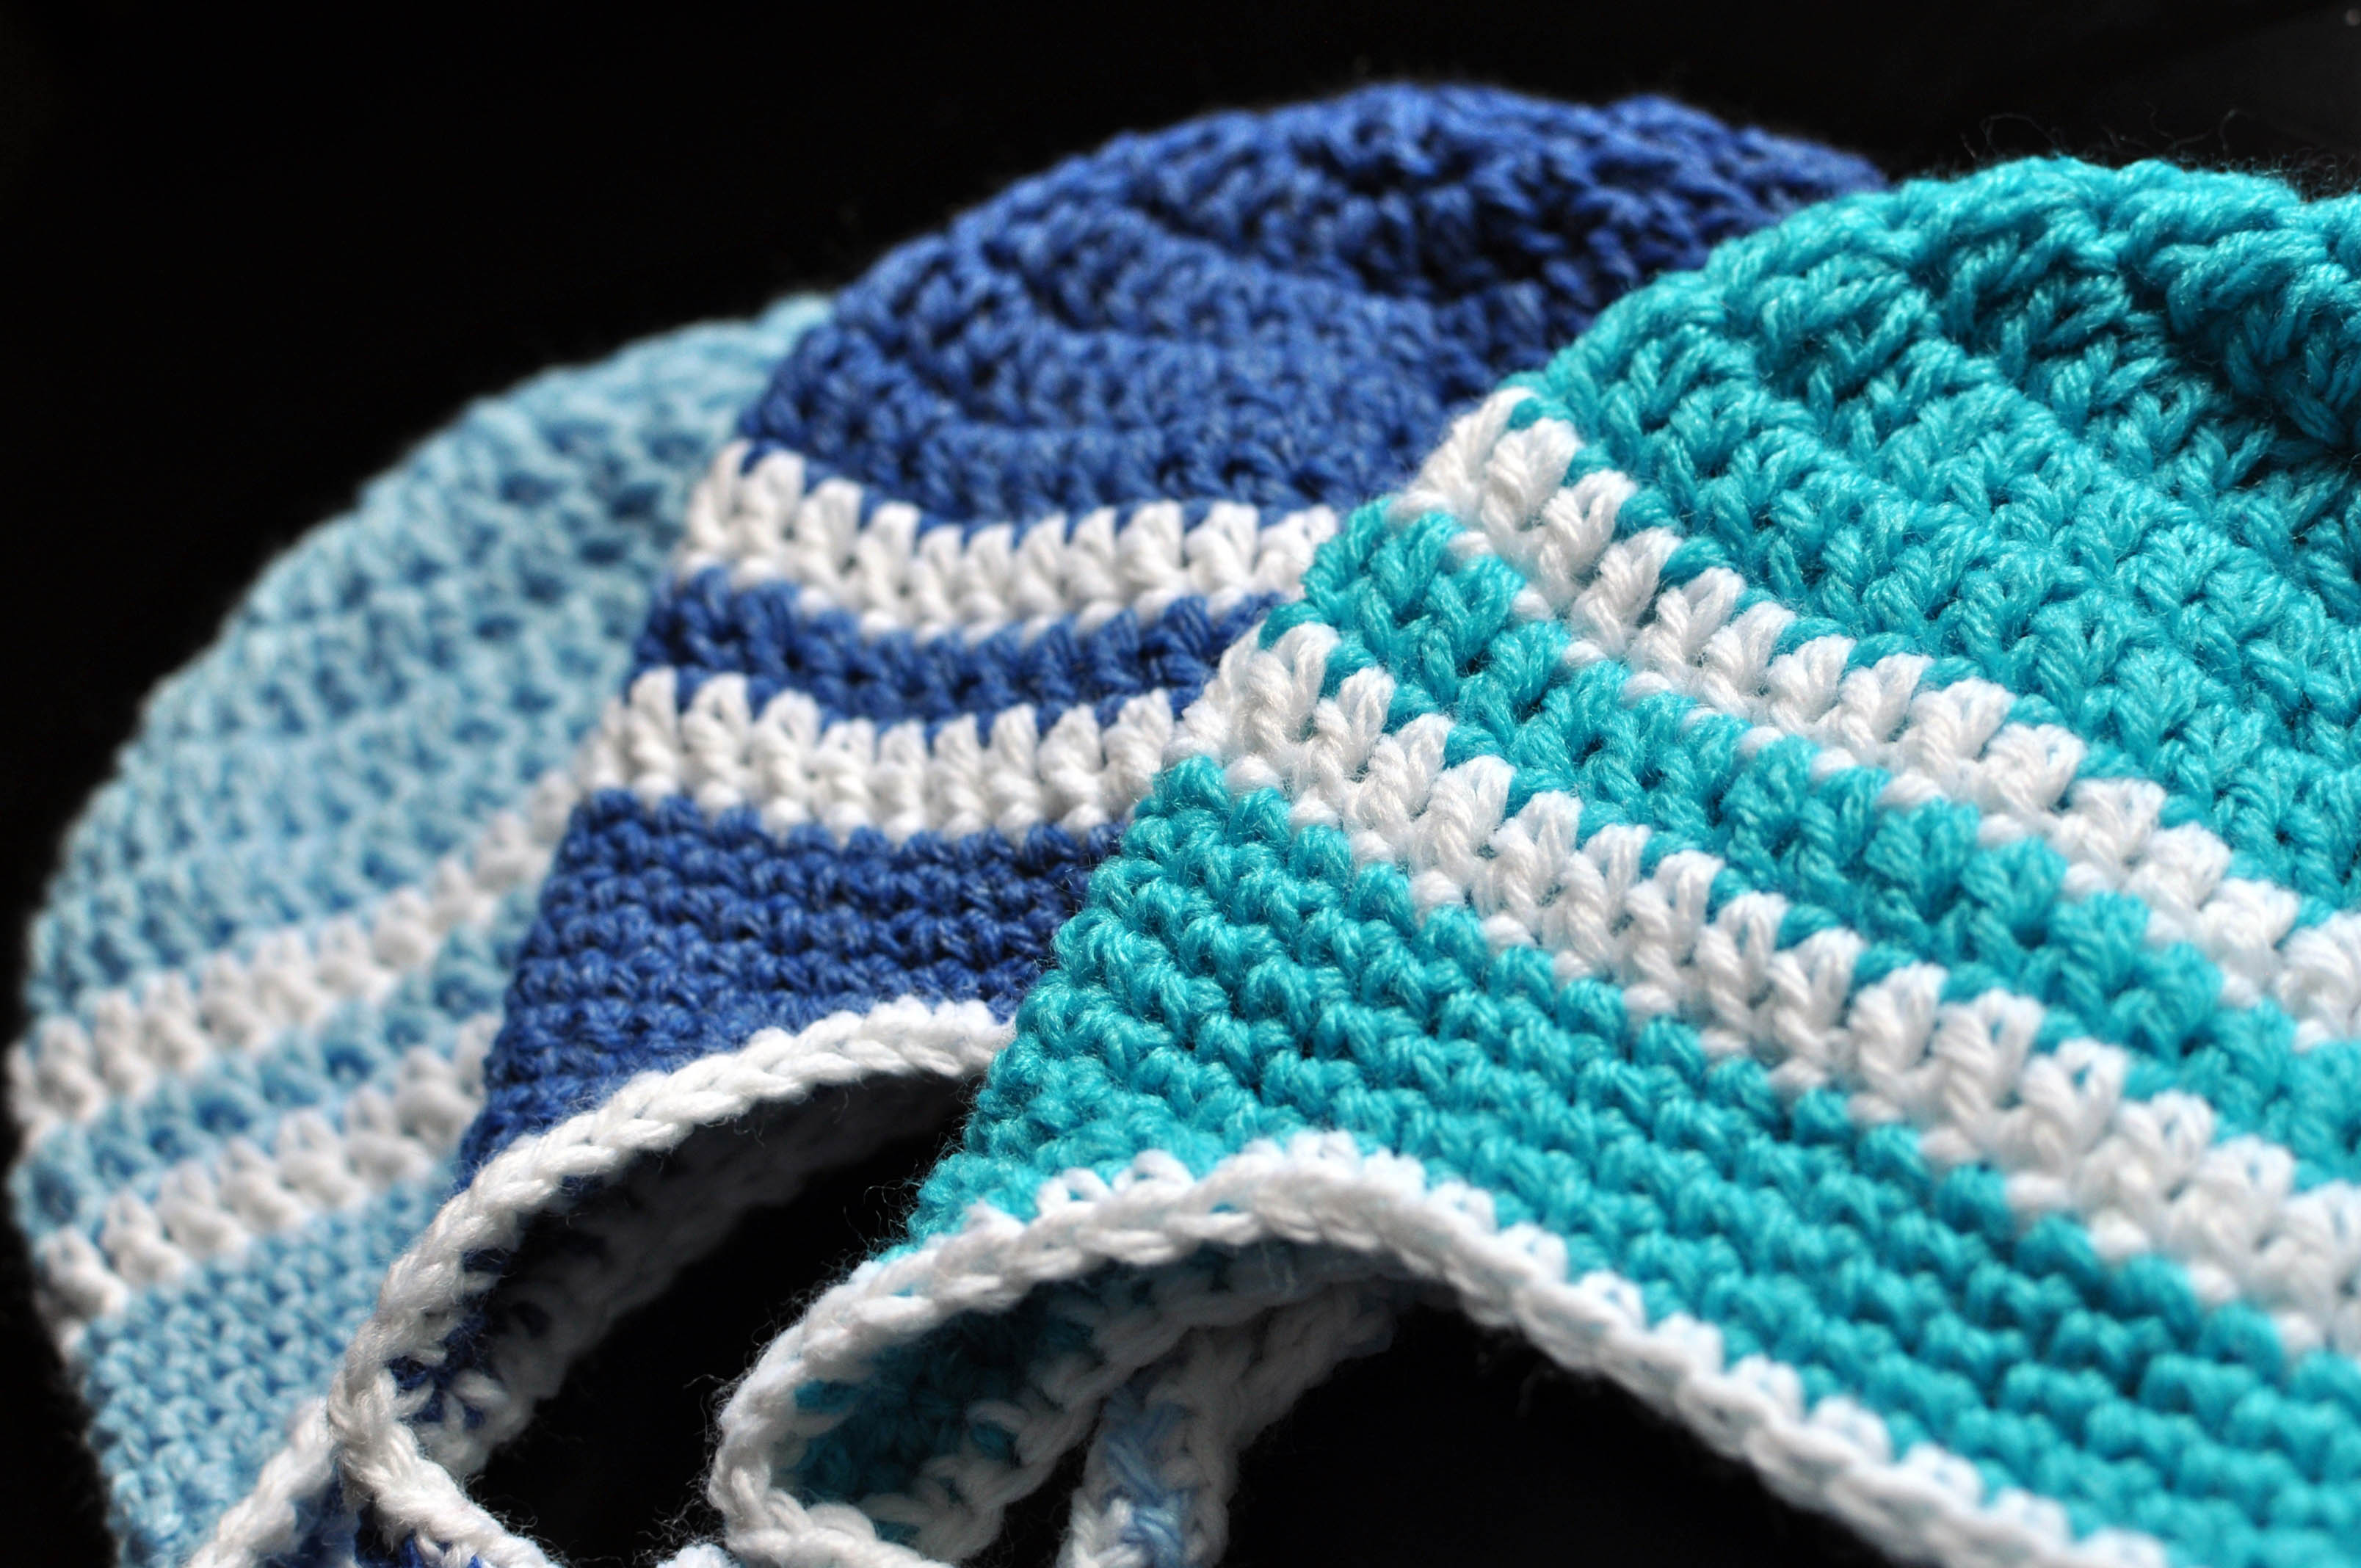 Crochet Patterns Hat With Ear Flaps : Free Crochet Pattern: Striped Earflap Hat Classy Crochet